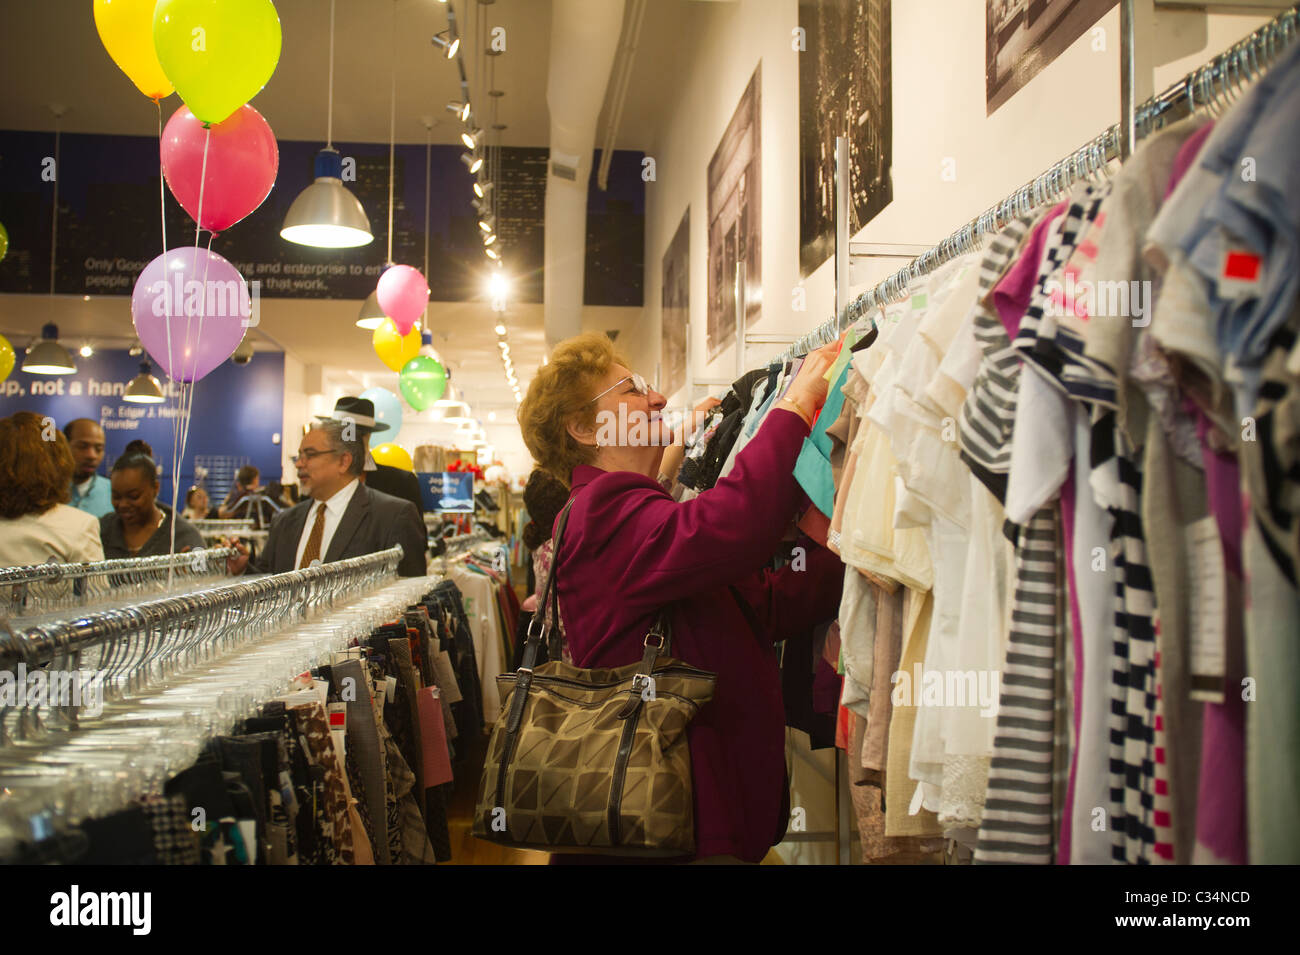 Goodwill Store Stock Photos & Goodwill Store Stock Images - Alamy